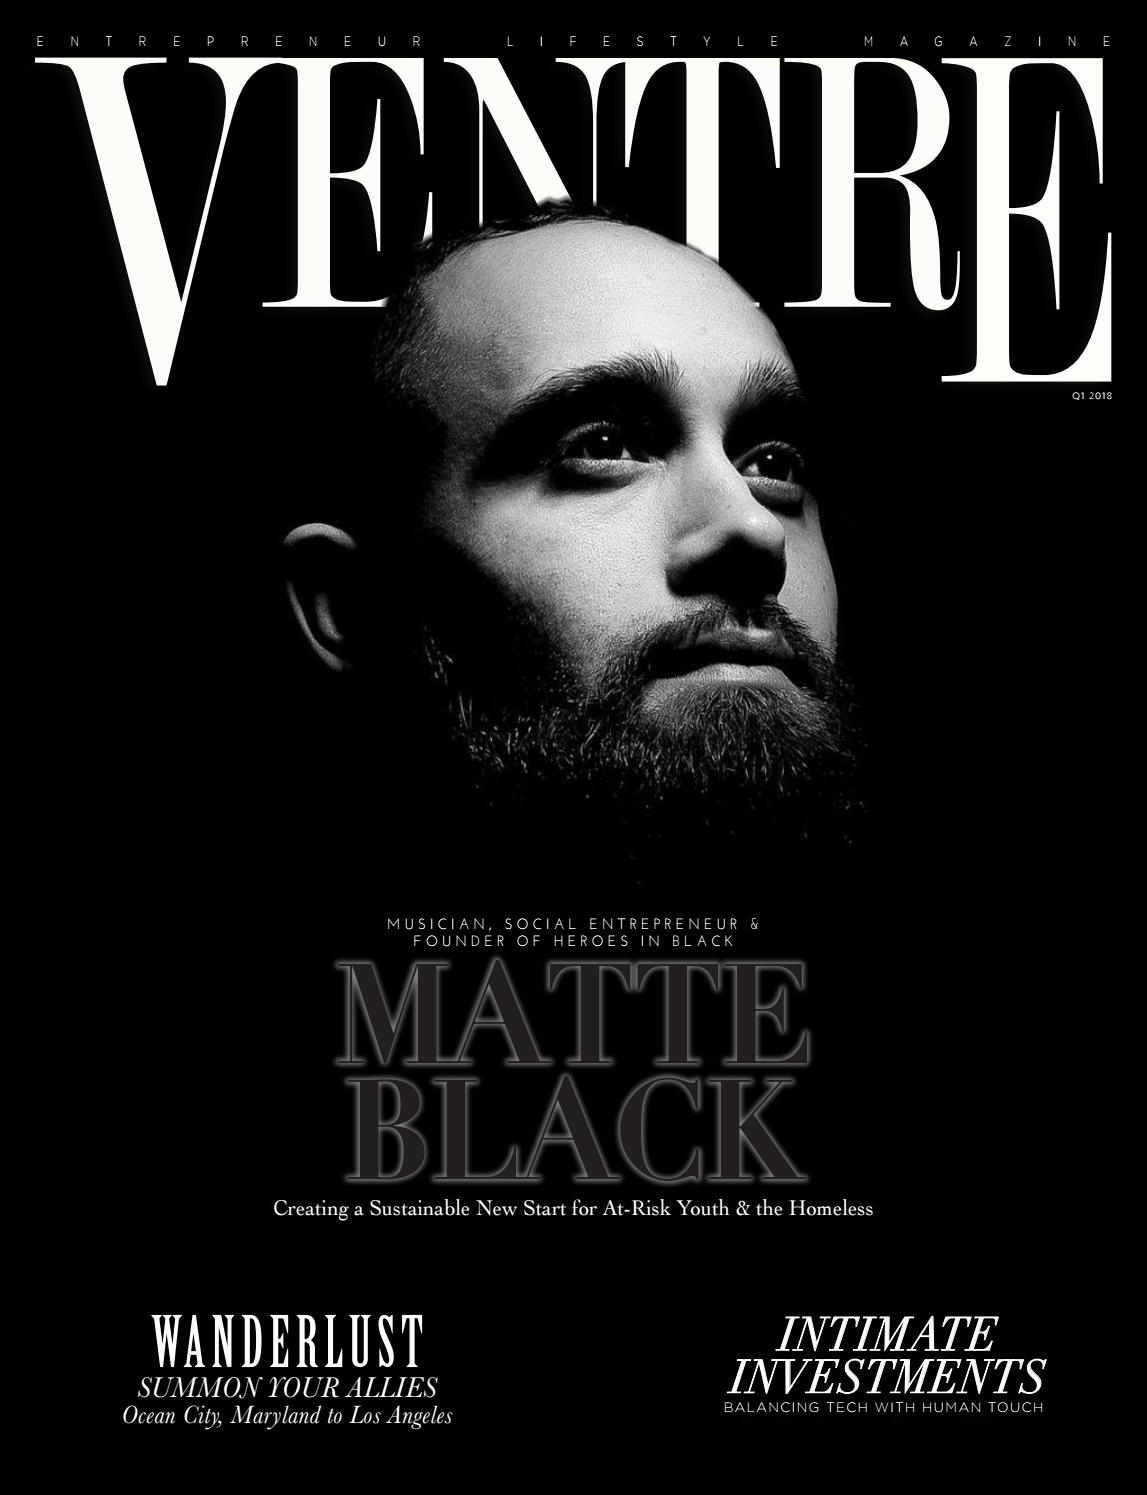 b4f4e3553ab6 Q1 2018 Issue by VENTRE Magazine - issuu